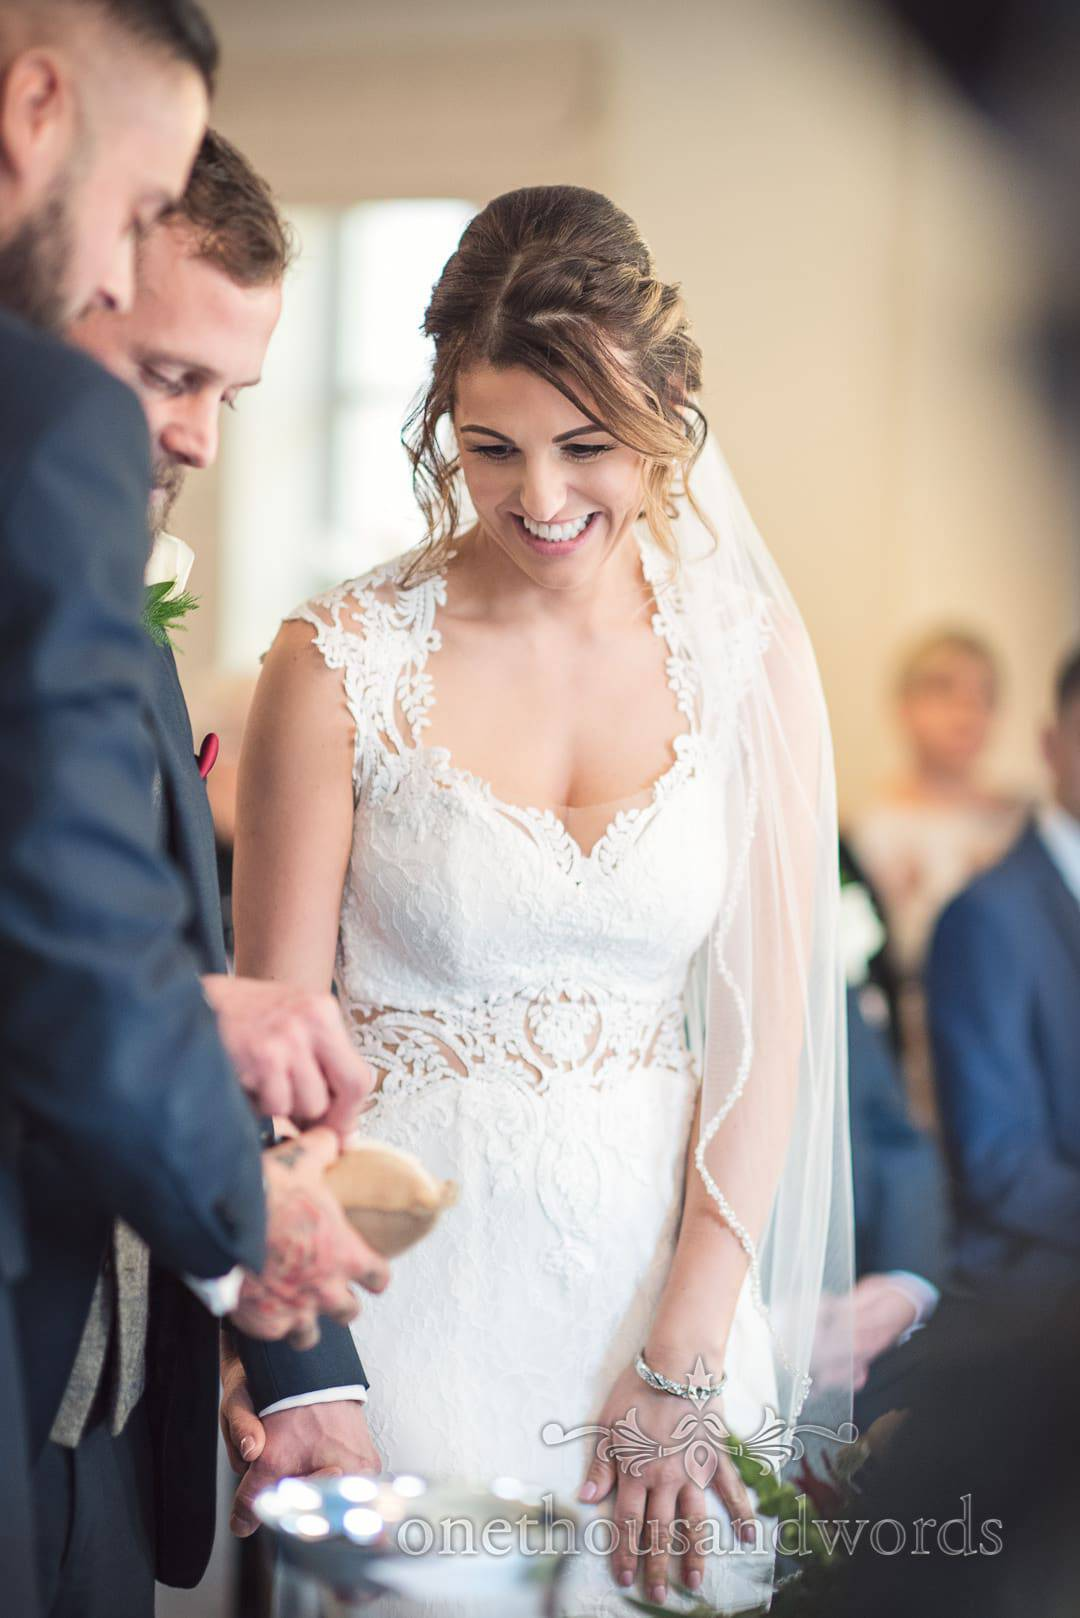 Best mad delivers wedding rings during ceremony at Italian Villa wedding photos